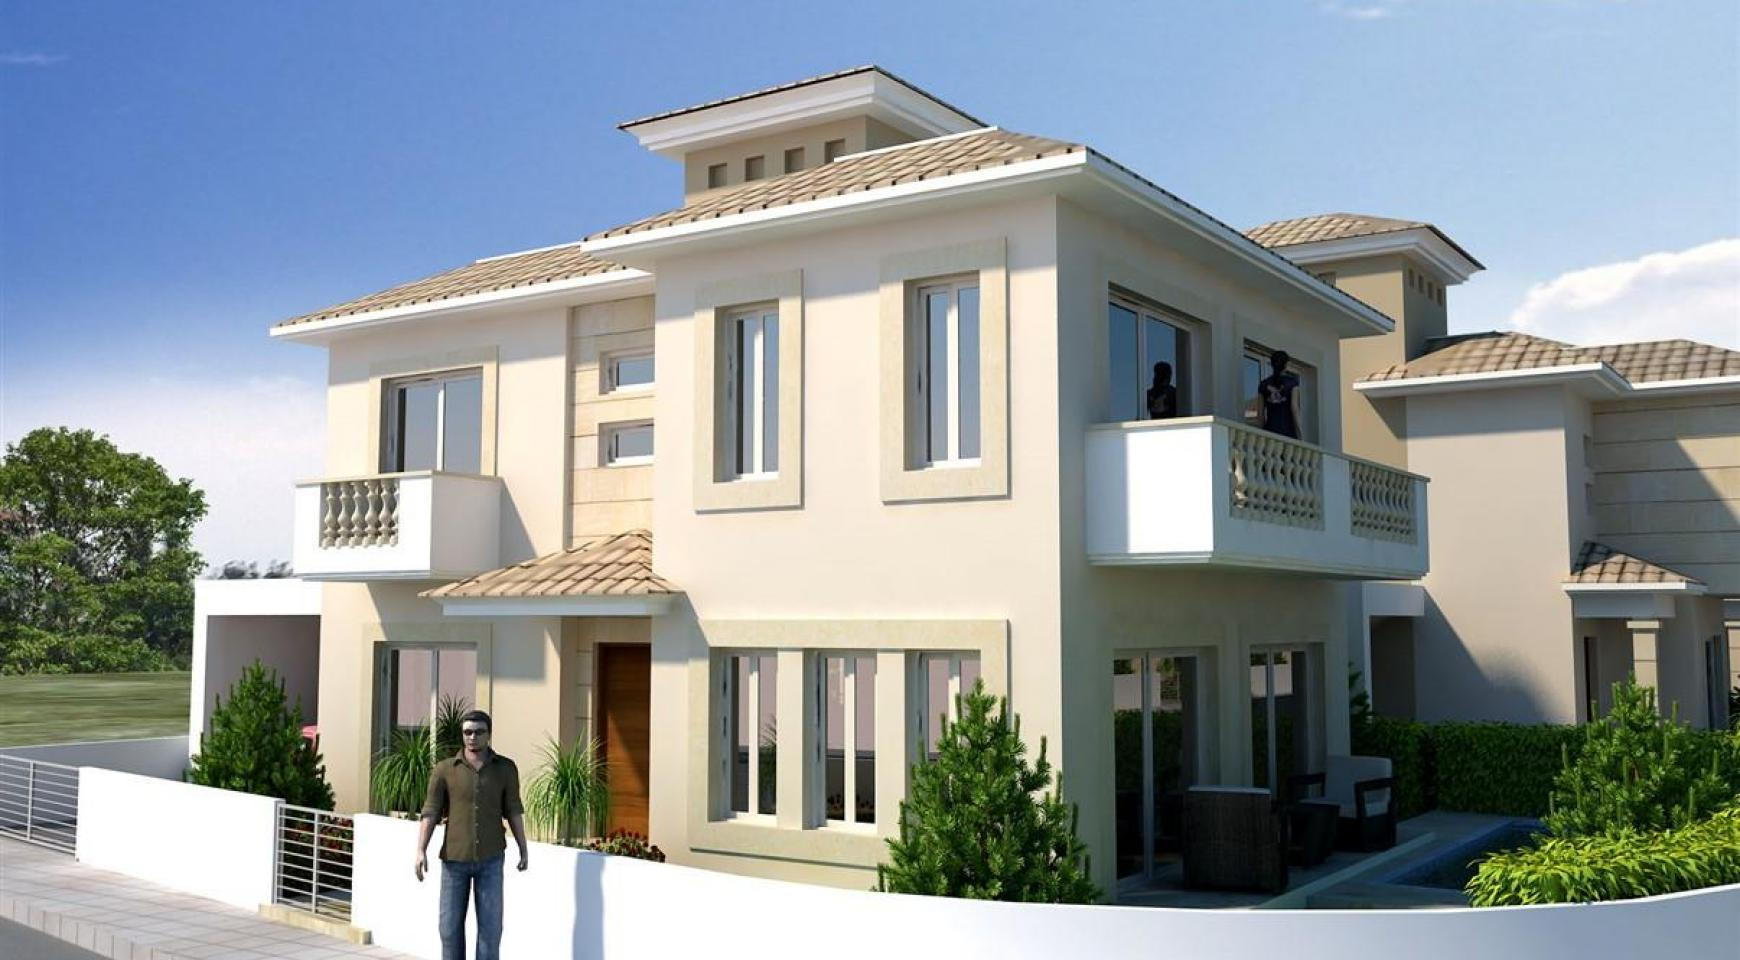 3 Bedroom Villa in New Project in Paphos - 5